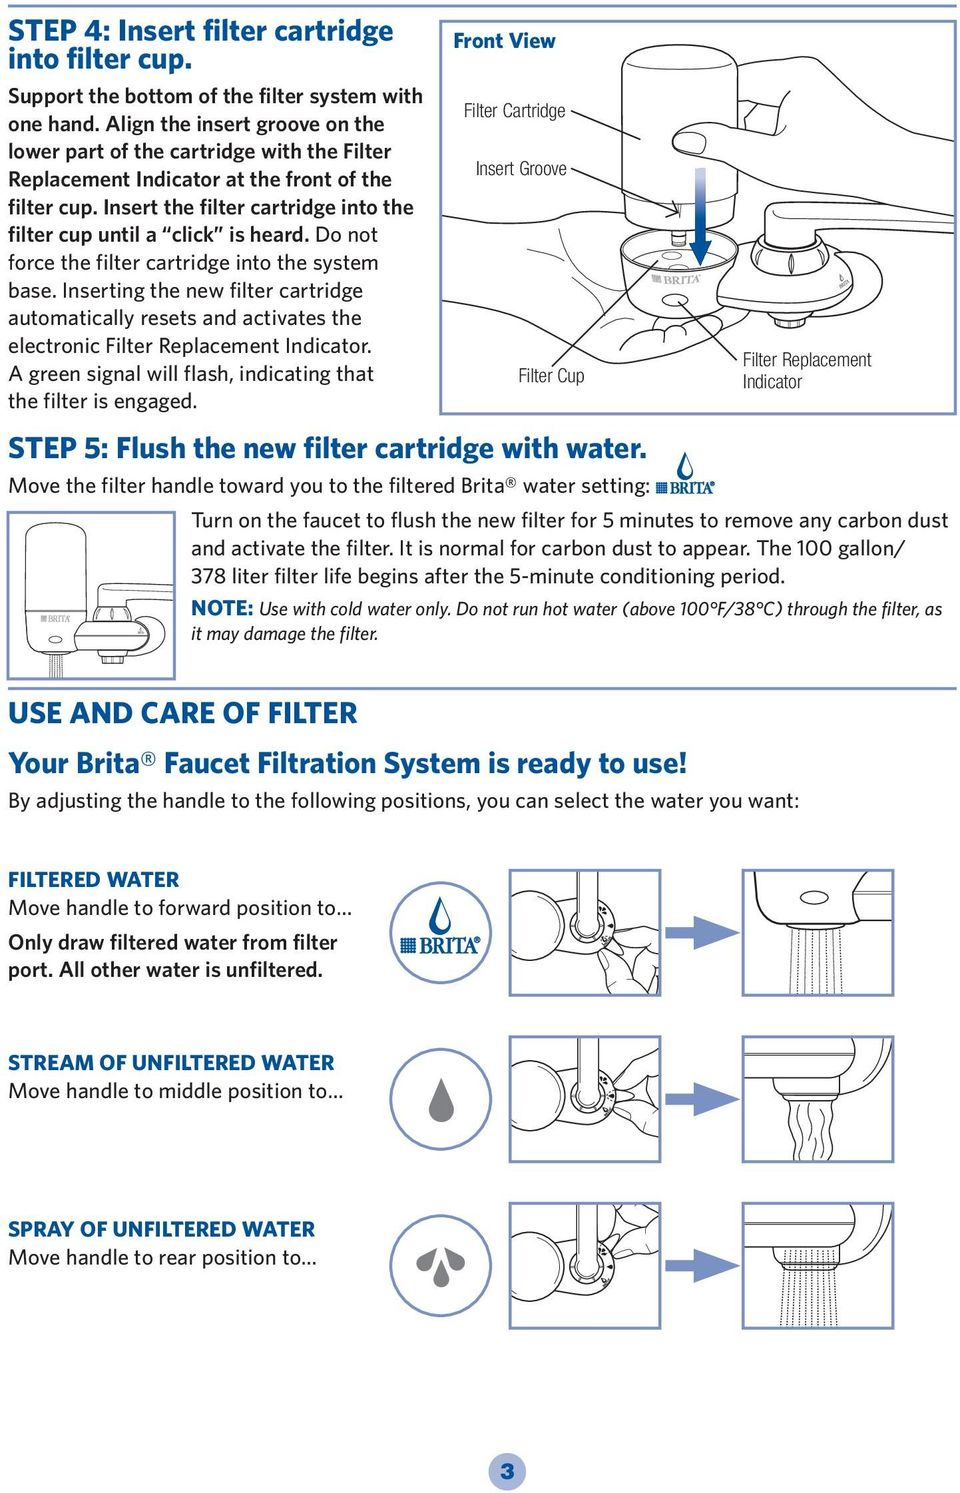 Do not force the filter cartridge into the system base. Inserting the new filter cartridge automatically resets and activates the electronic Filter Replacement Indicator.